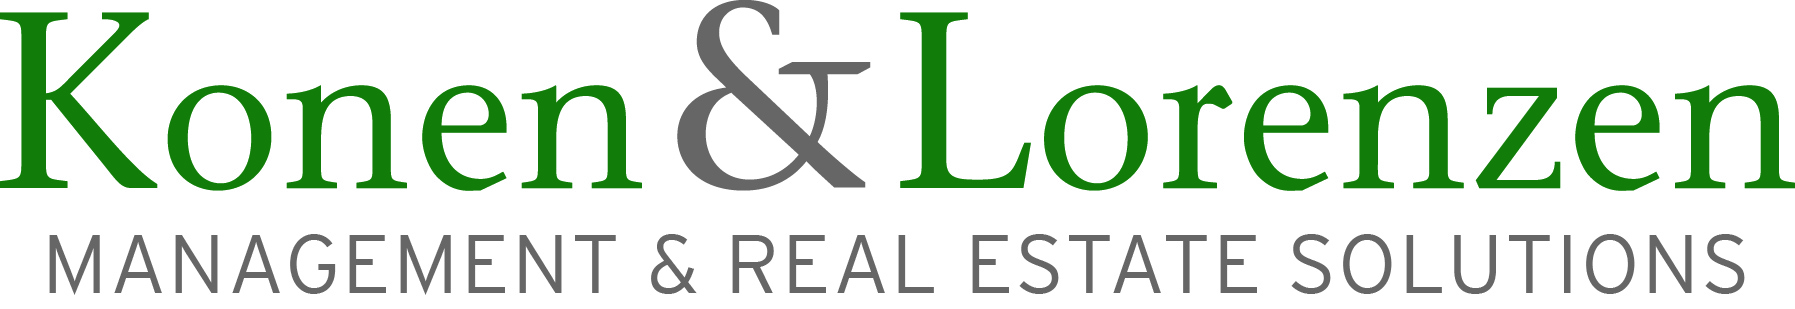 Konen & Lorenzen Management & Real Estate Solutions Logo